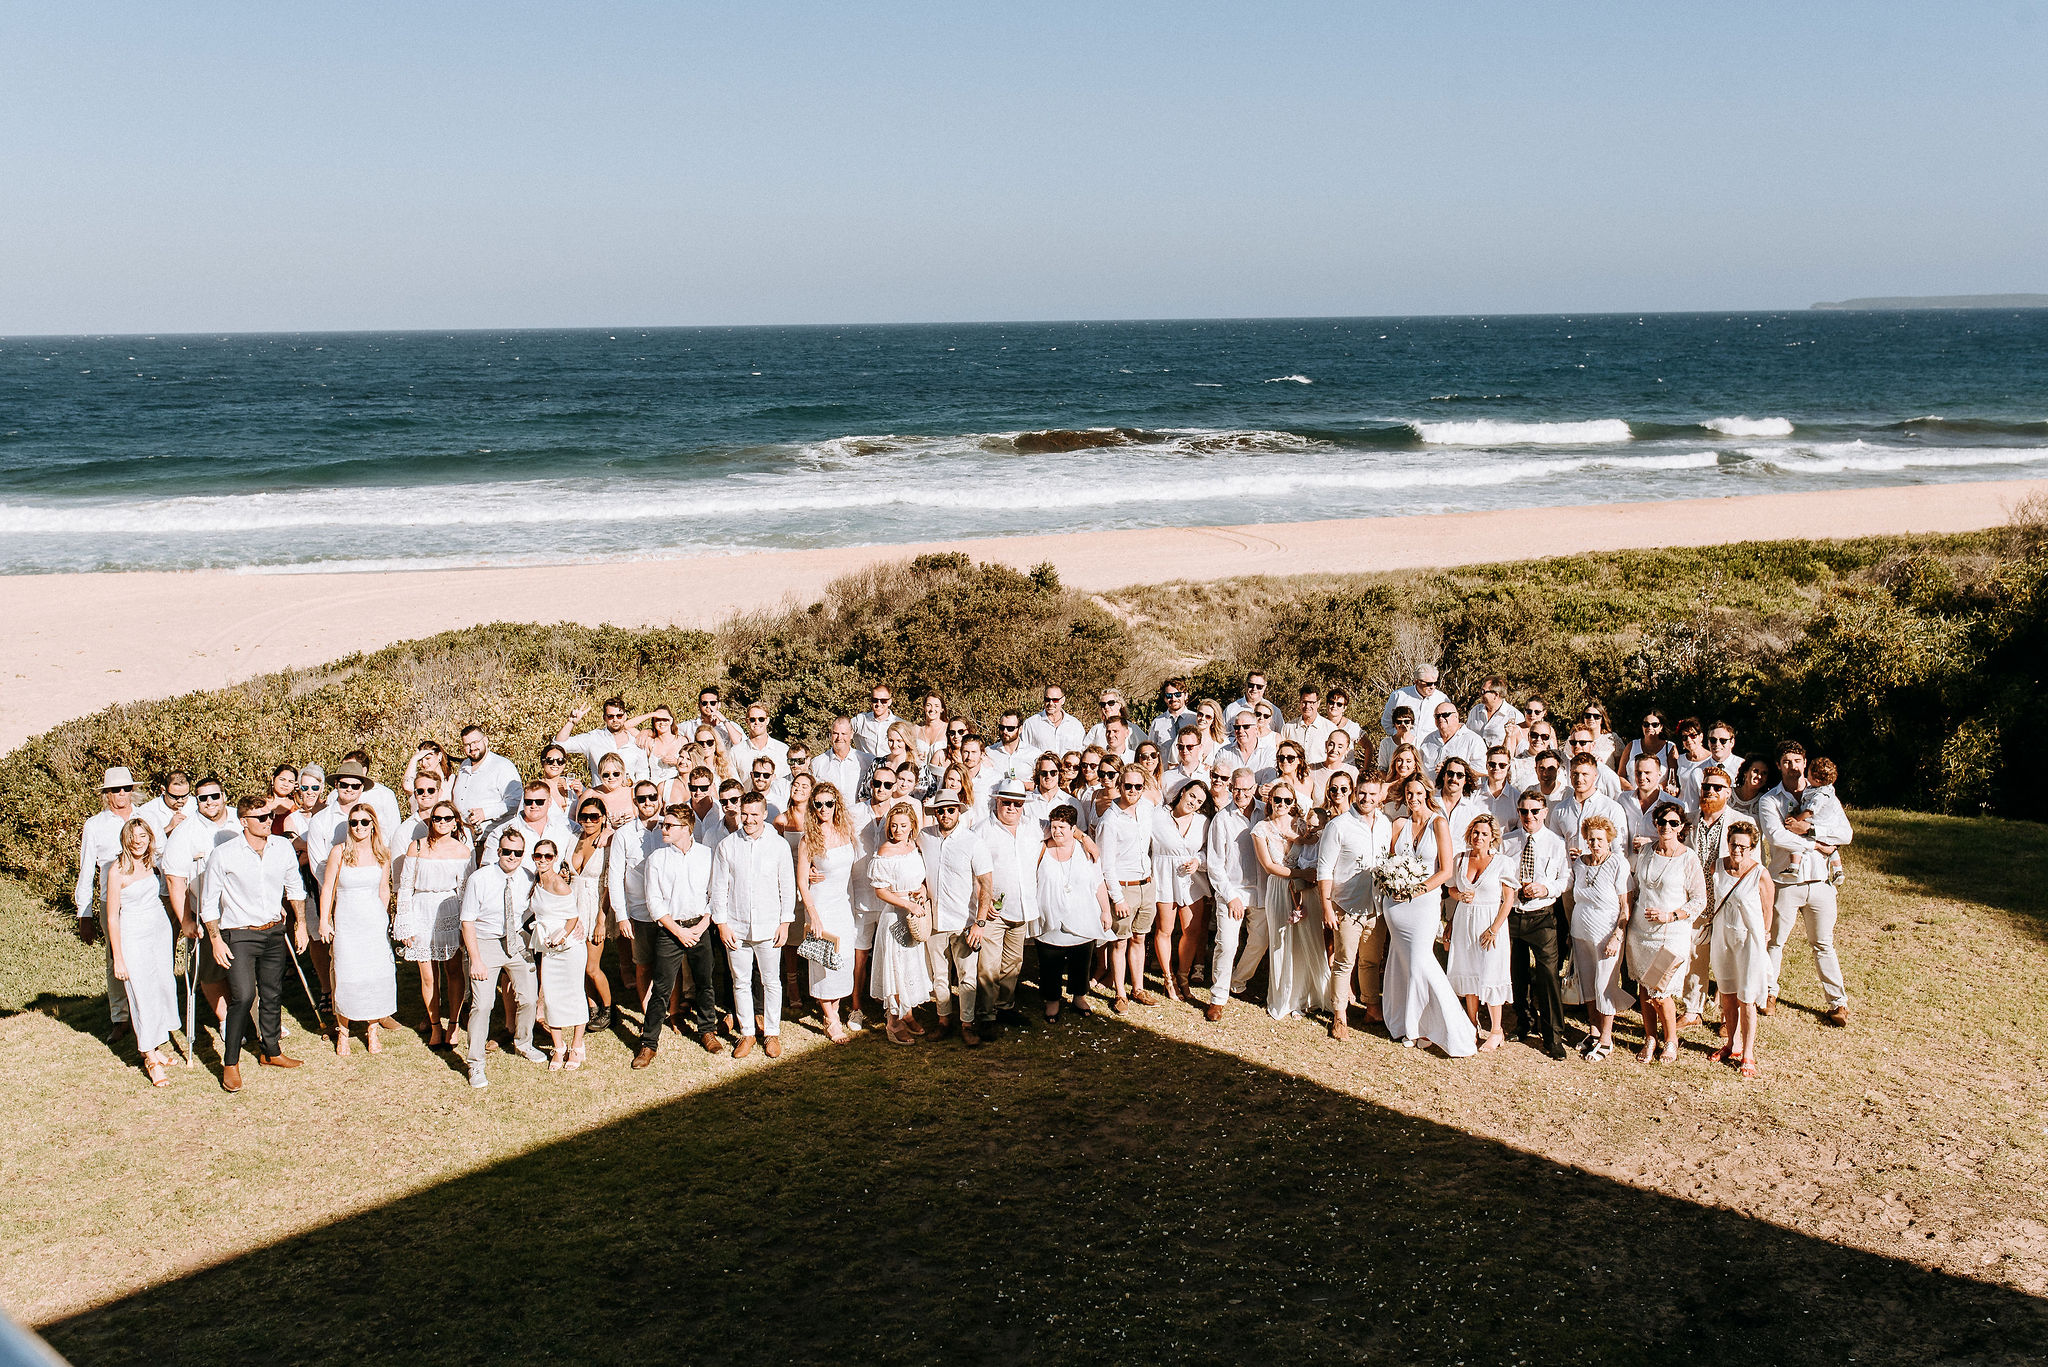 CULBURRA-BEACH-WEDDING-HEFFERNAN-333.jpg